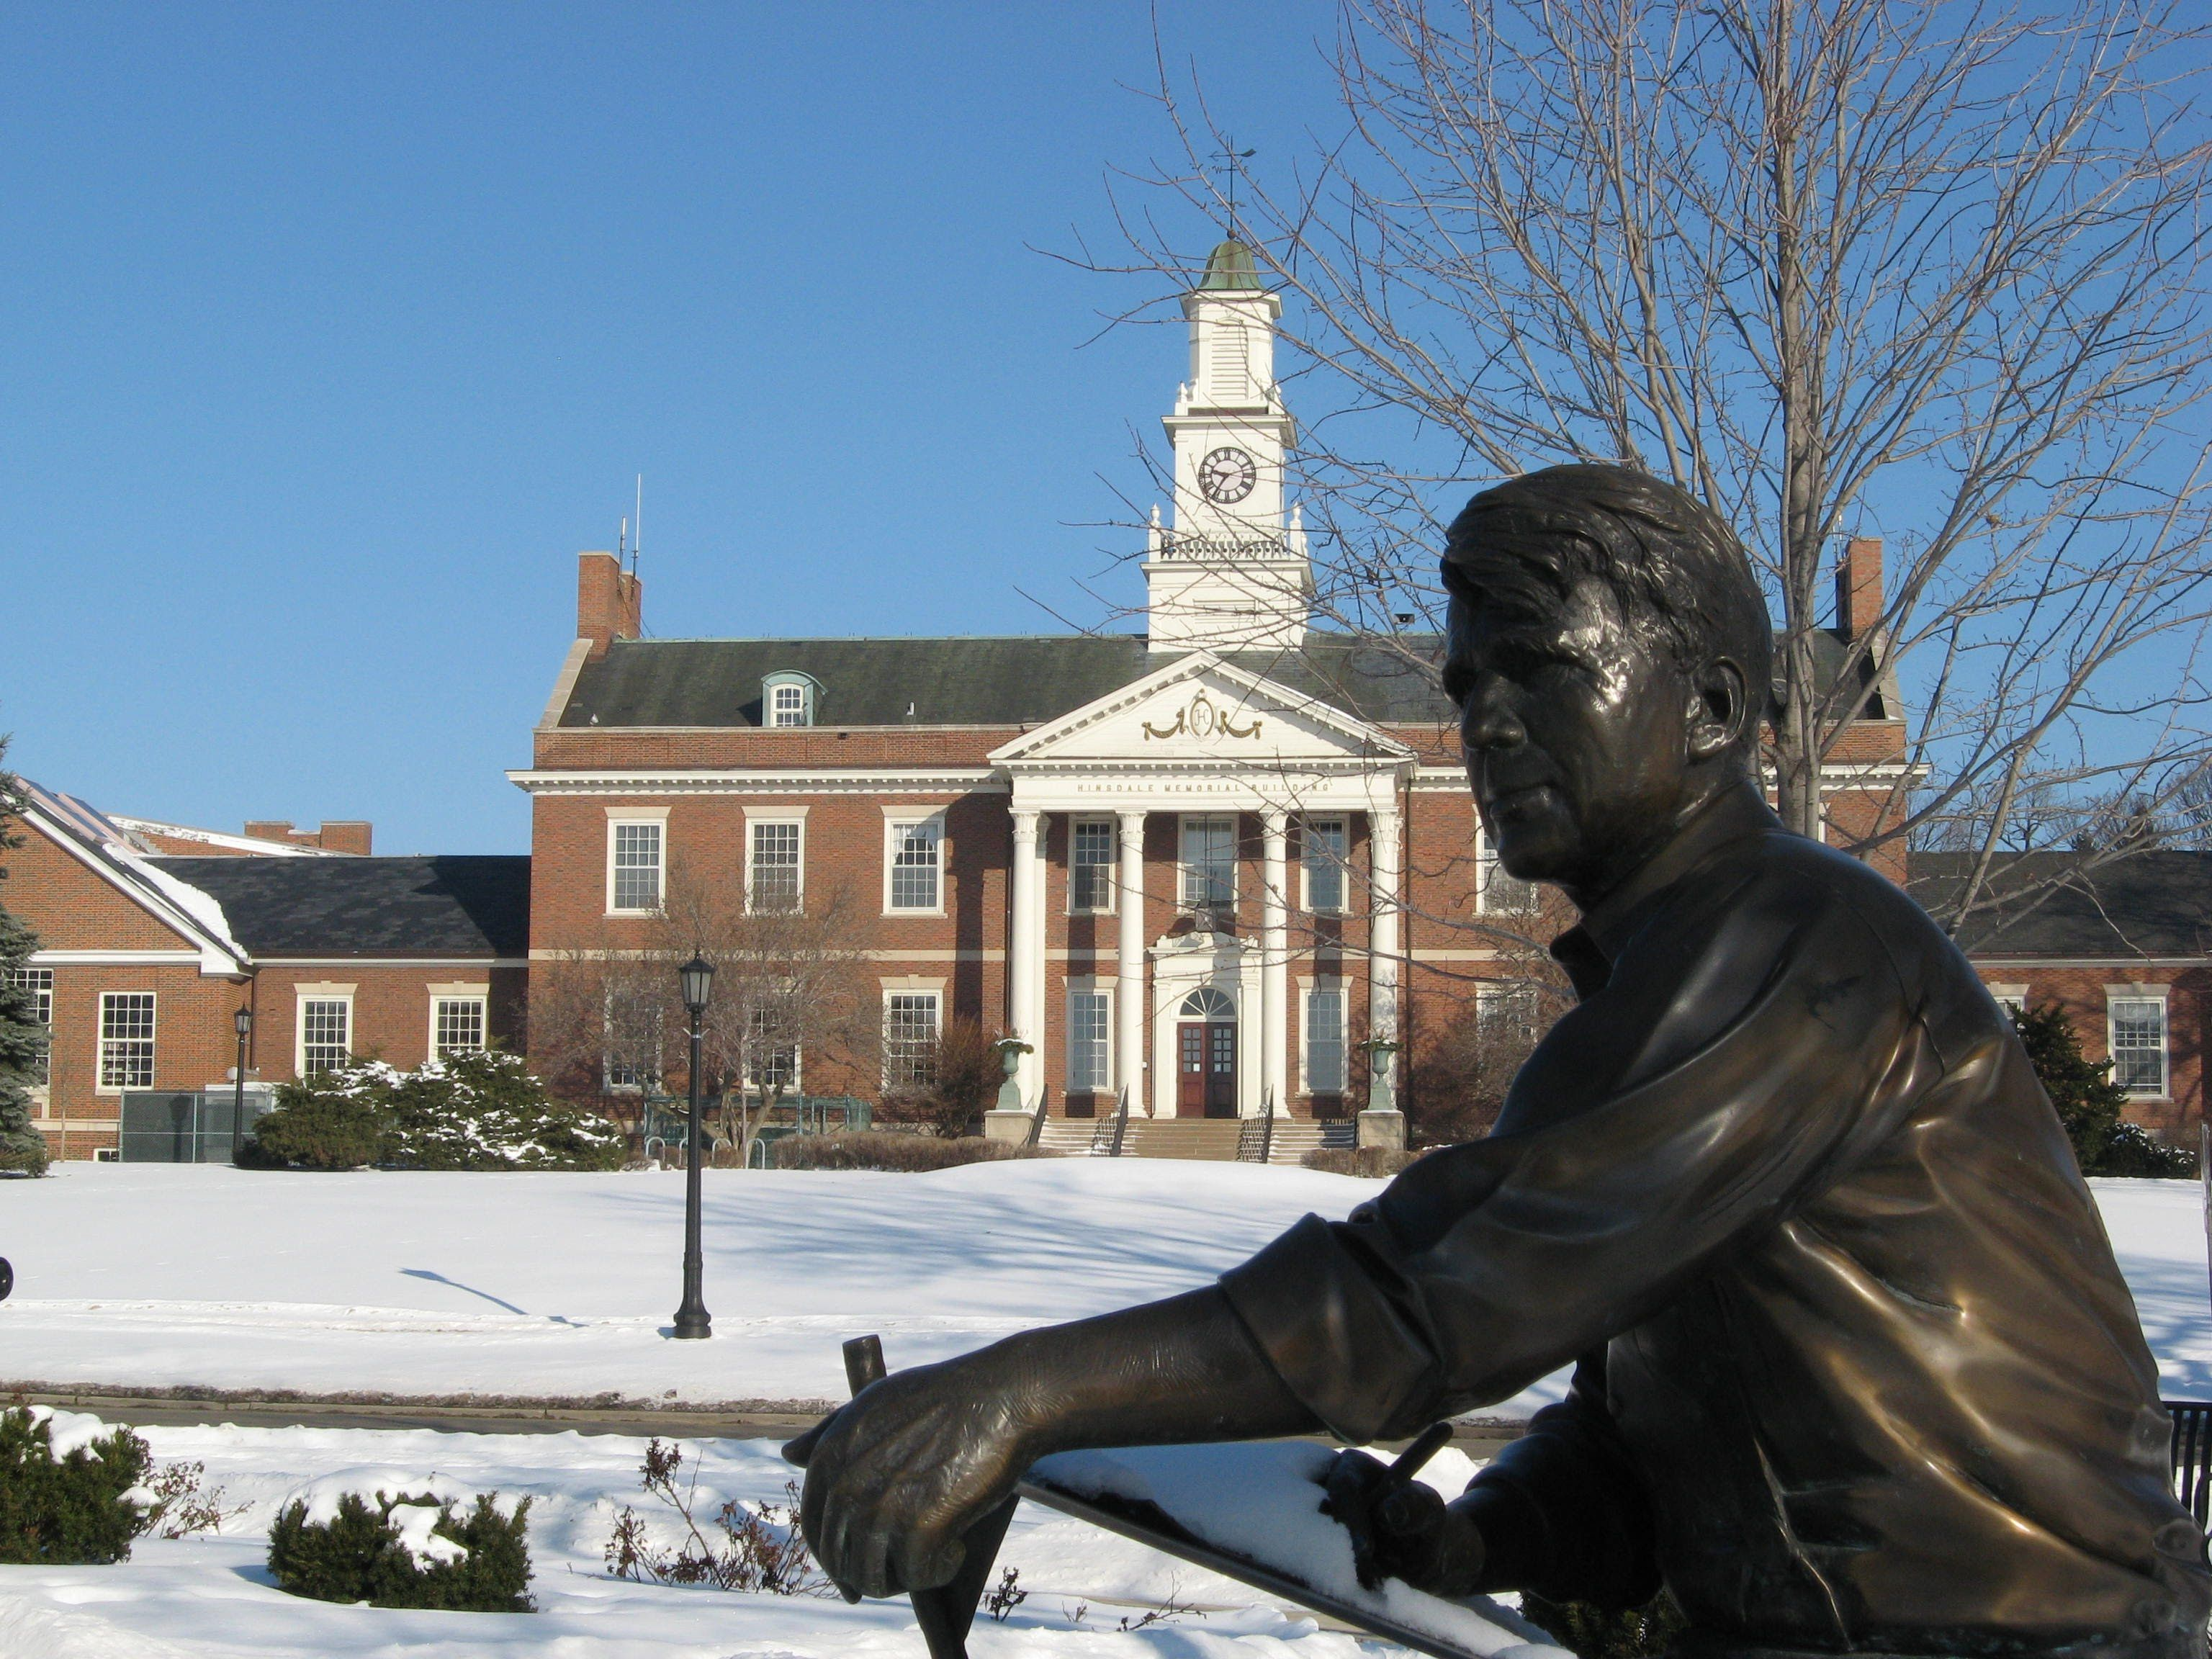 Robert Frost statue with Memorial Hall in the background.